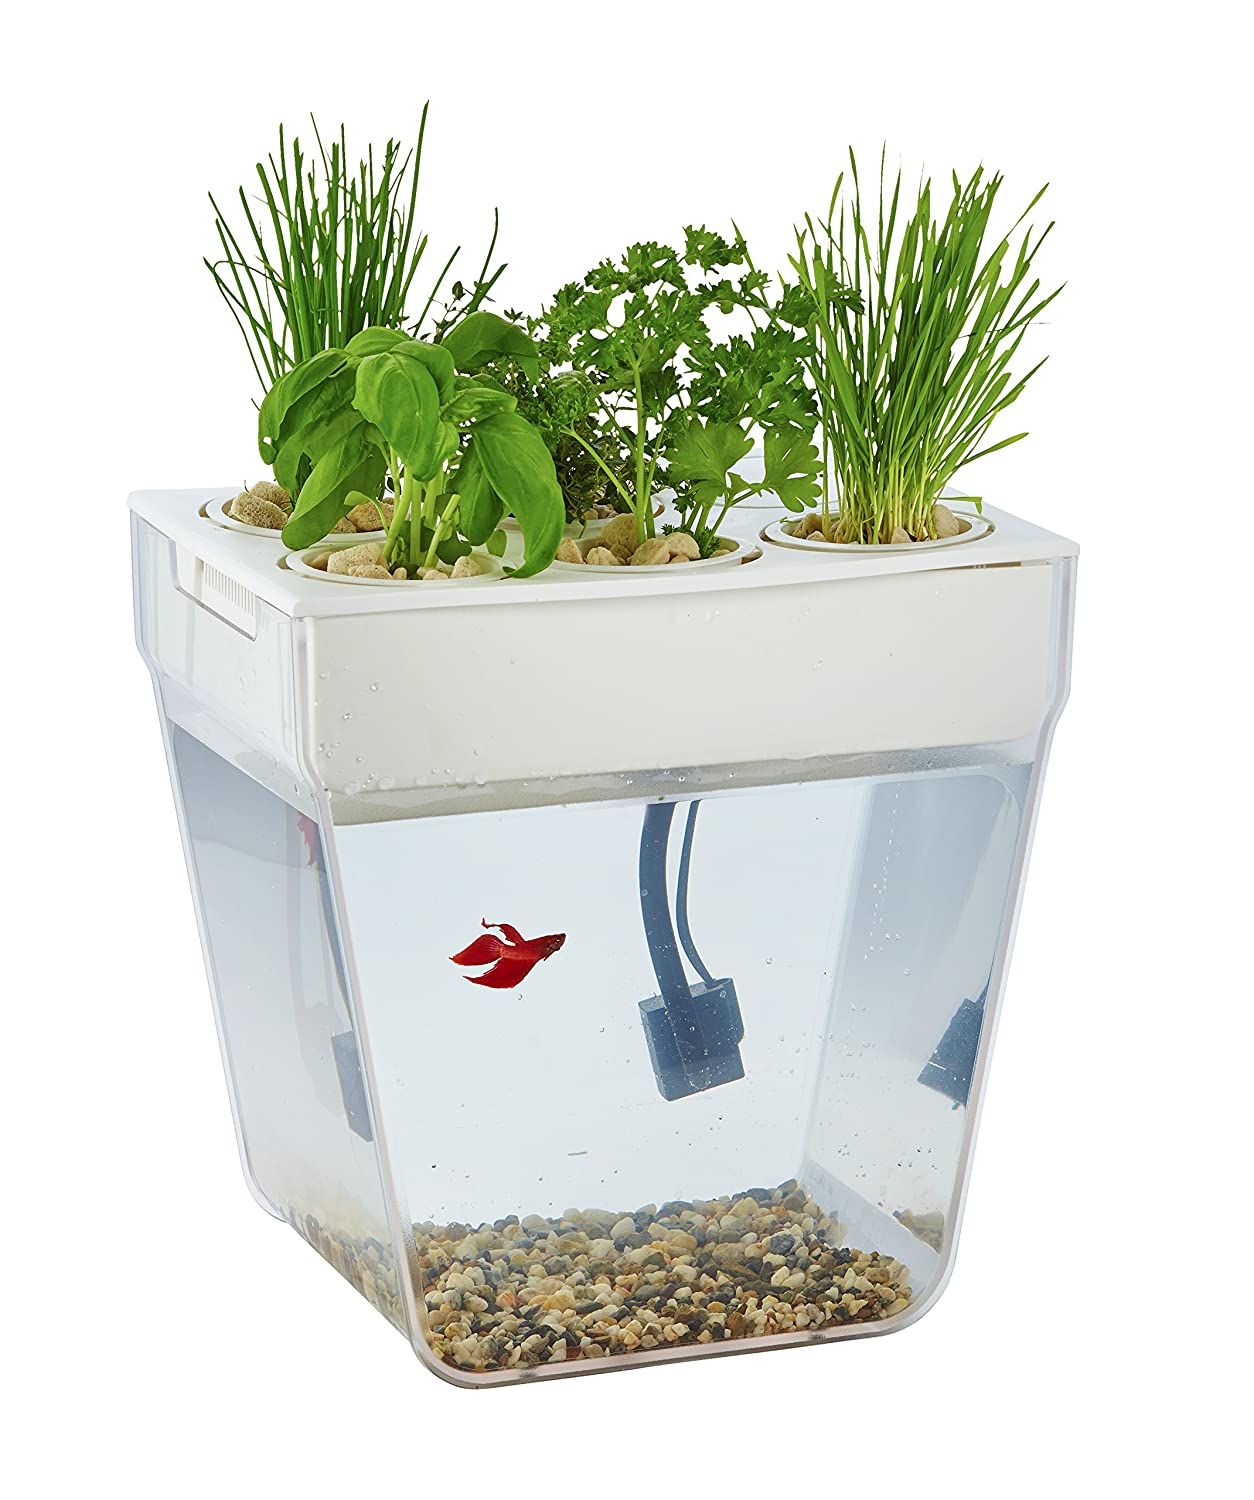 Herb Kitchen Garden Kit Amazoncom Back To The Roots Water Garden Amazon Launchpad